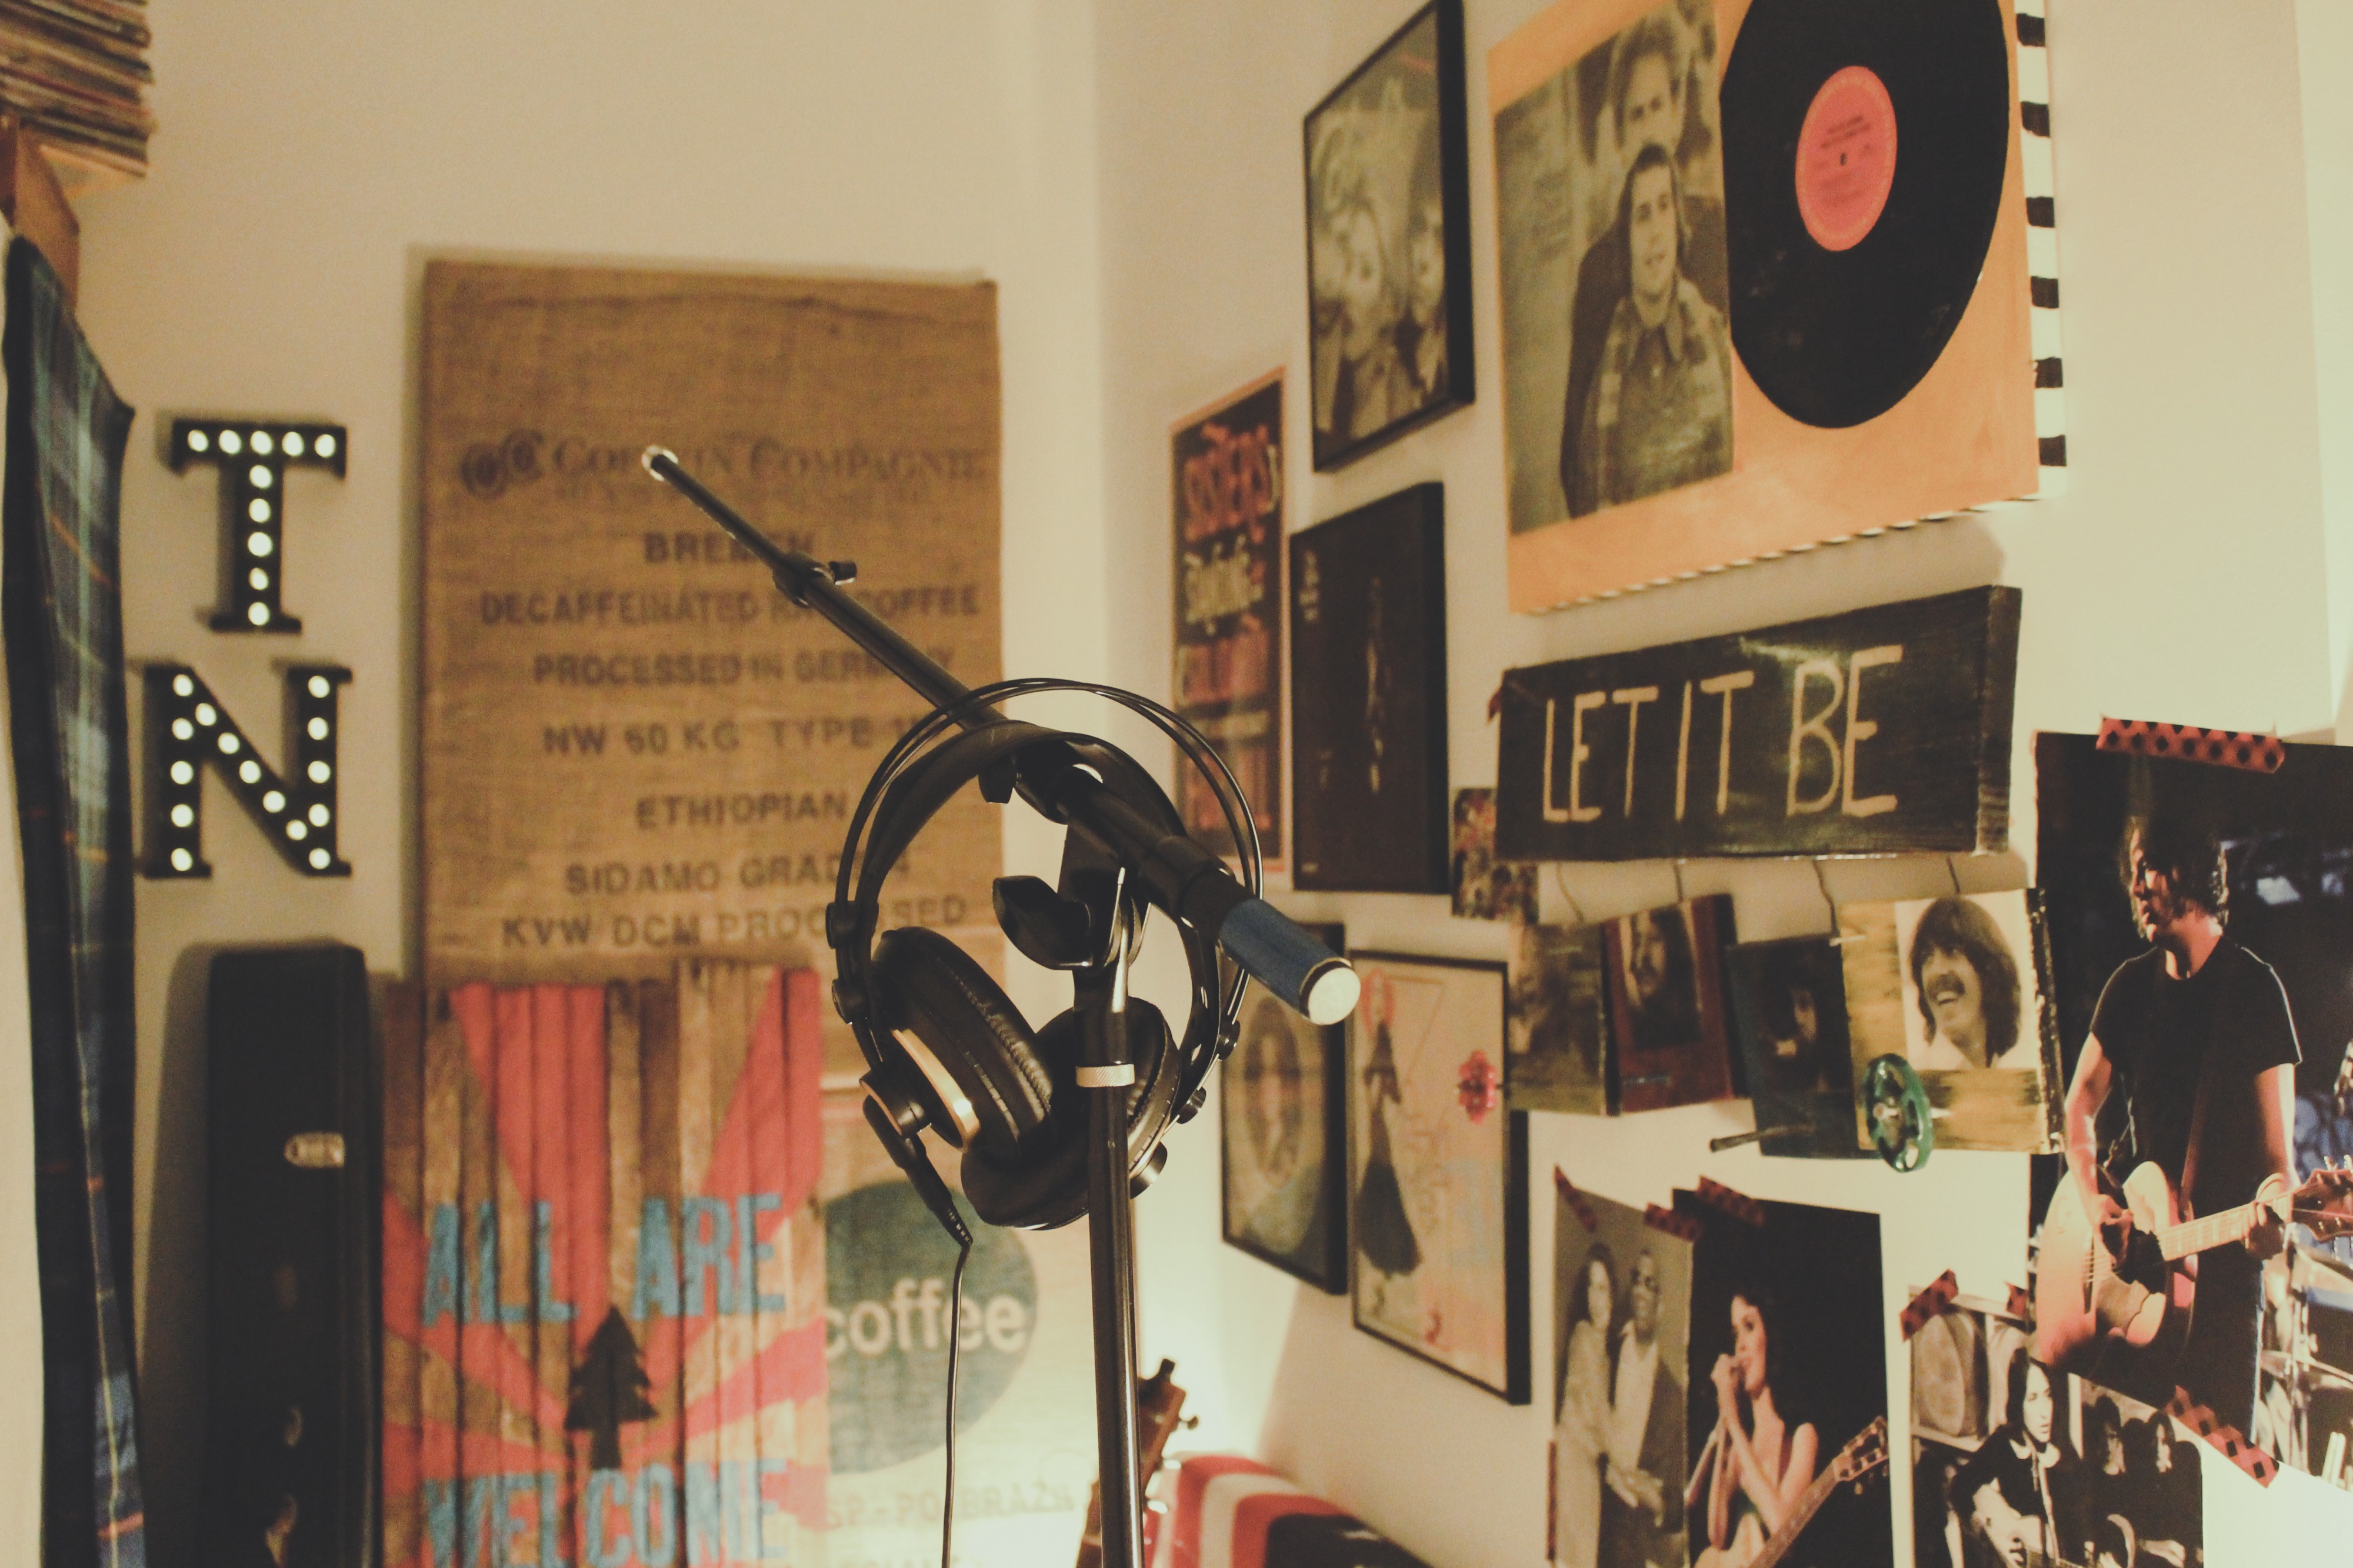 Recording room with record posters on the wall.